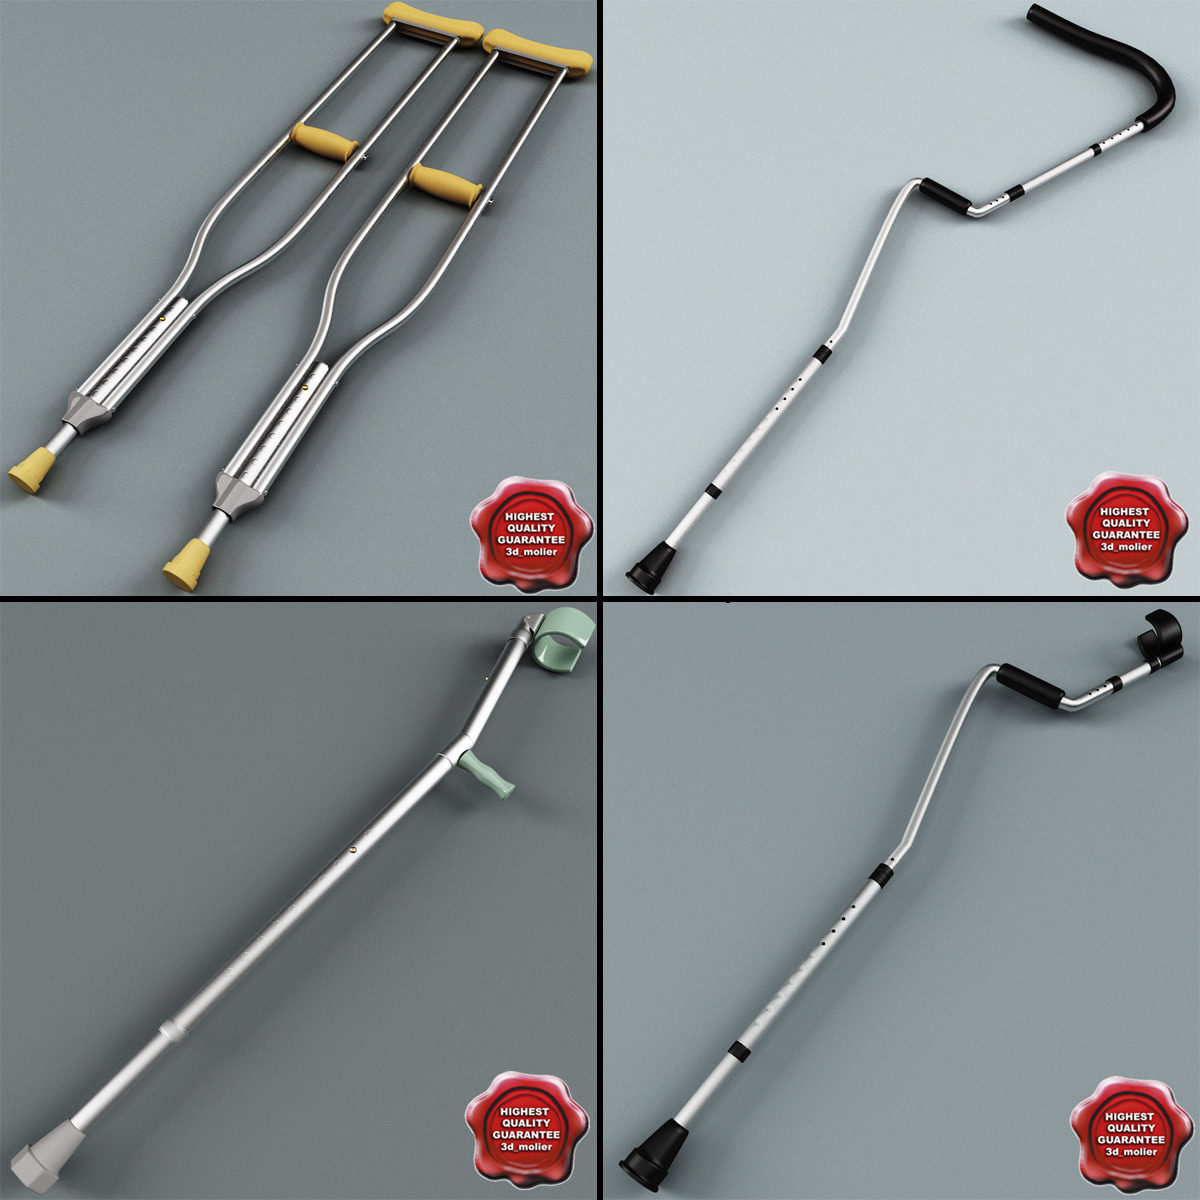 Crutches_Collection_00.jpg